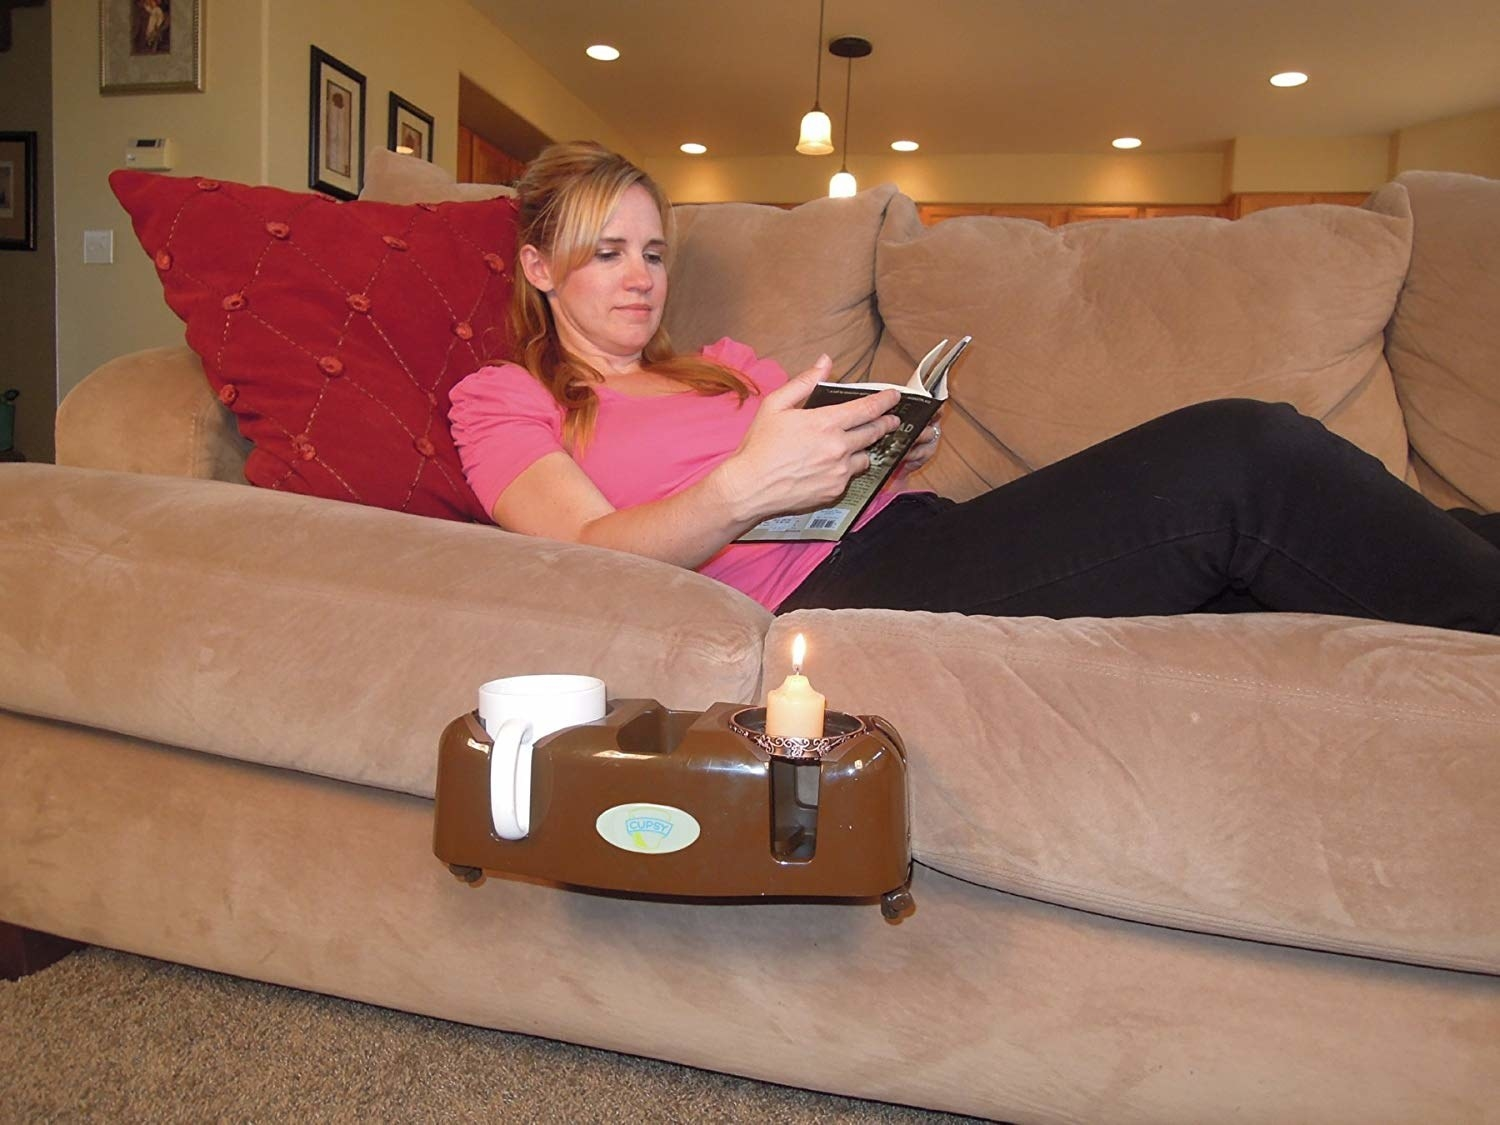 The oval-shaped couch caddy in brown with two cup holders and a smaller holder in the center attached to the side of a couch with a model lying and reading above it